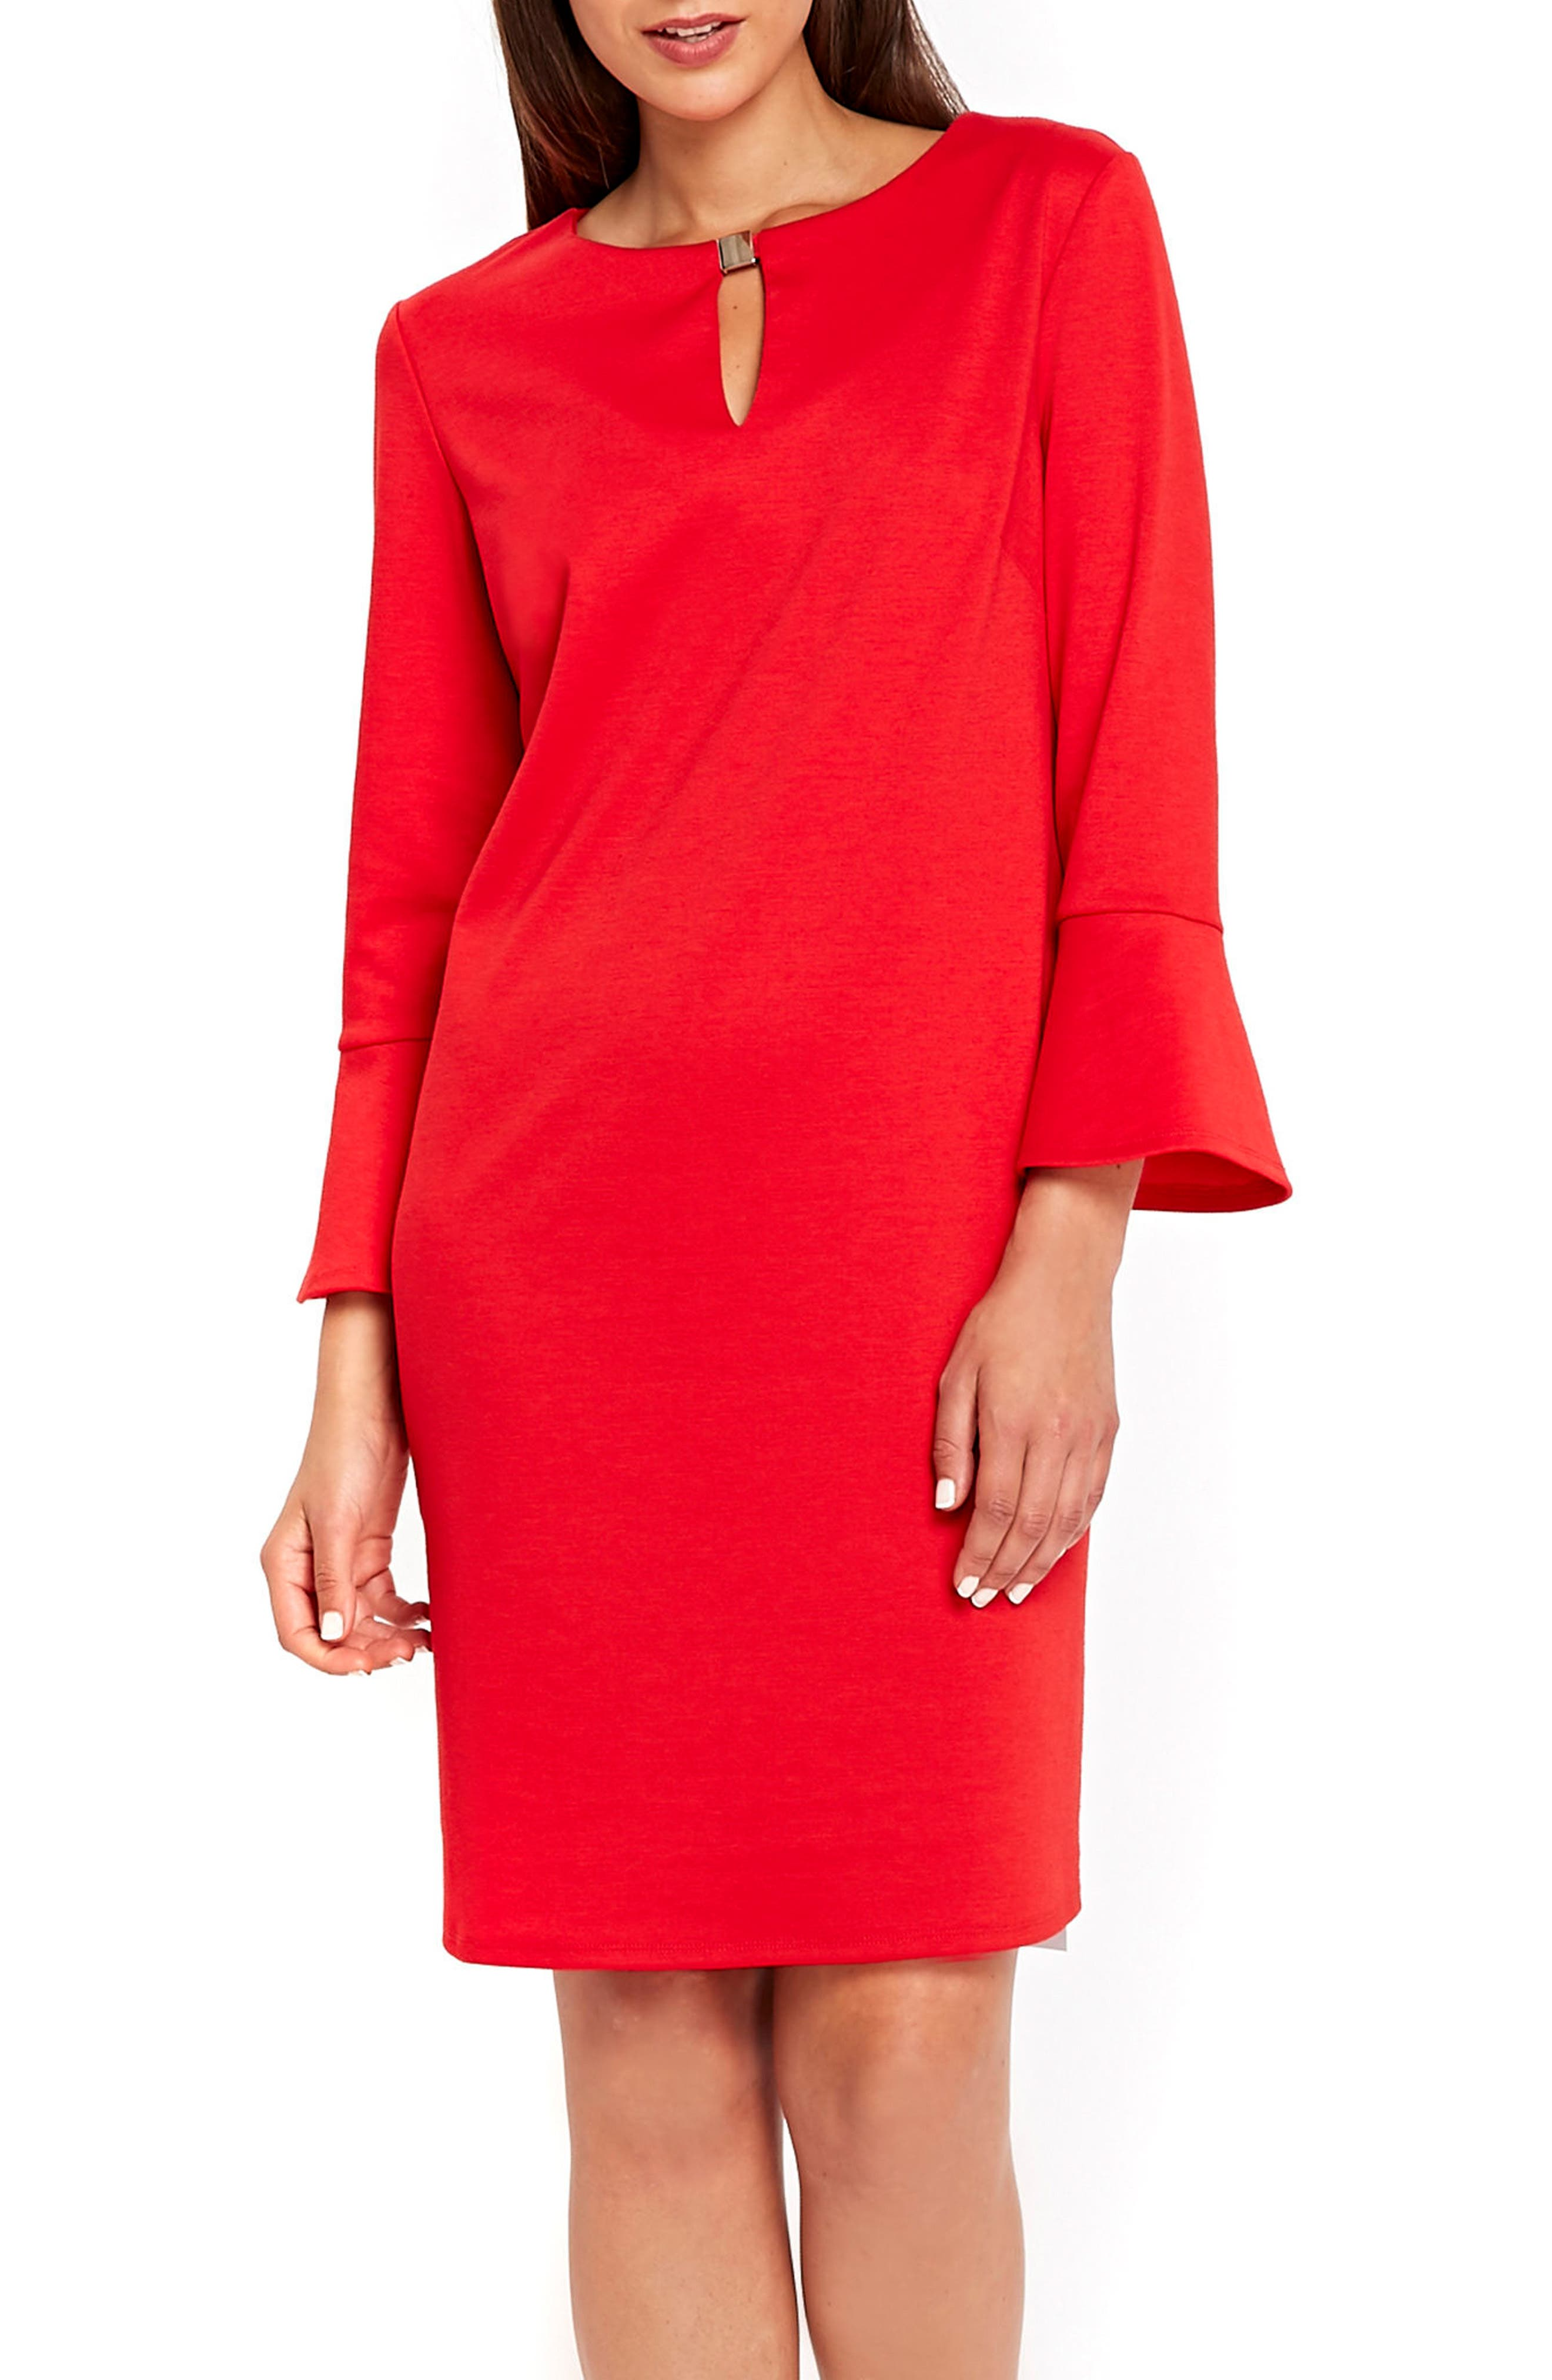 Bell Sleeve Keyhole Neck Dress,                             Main thumbnail 1, color,                             Red